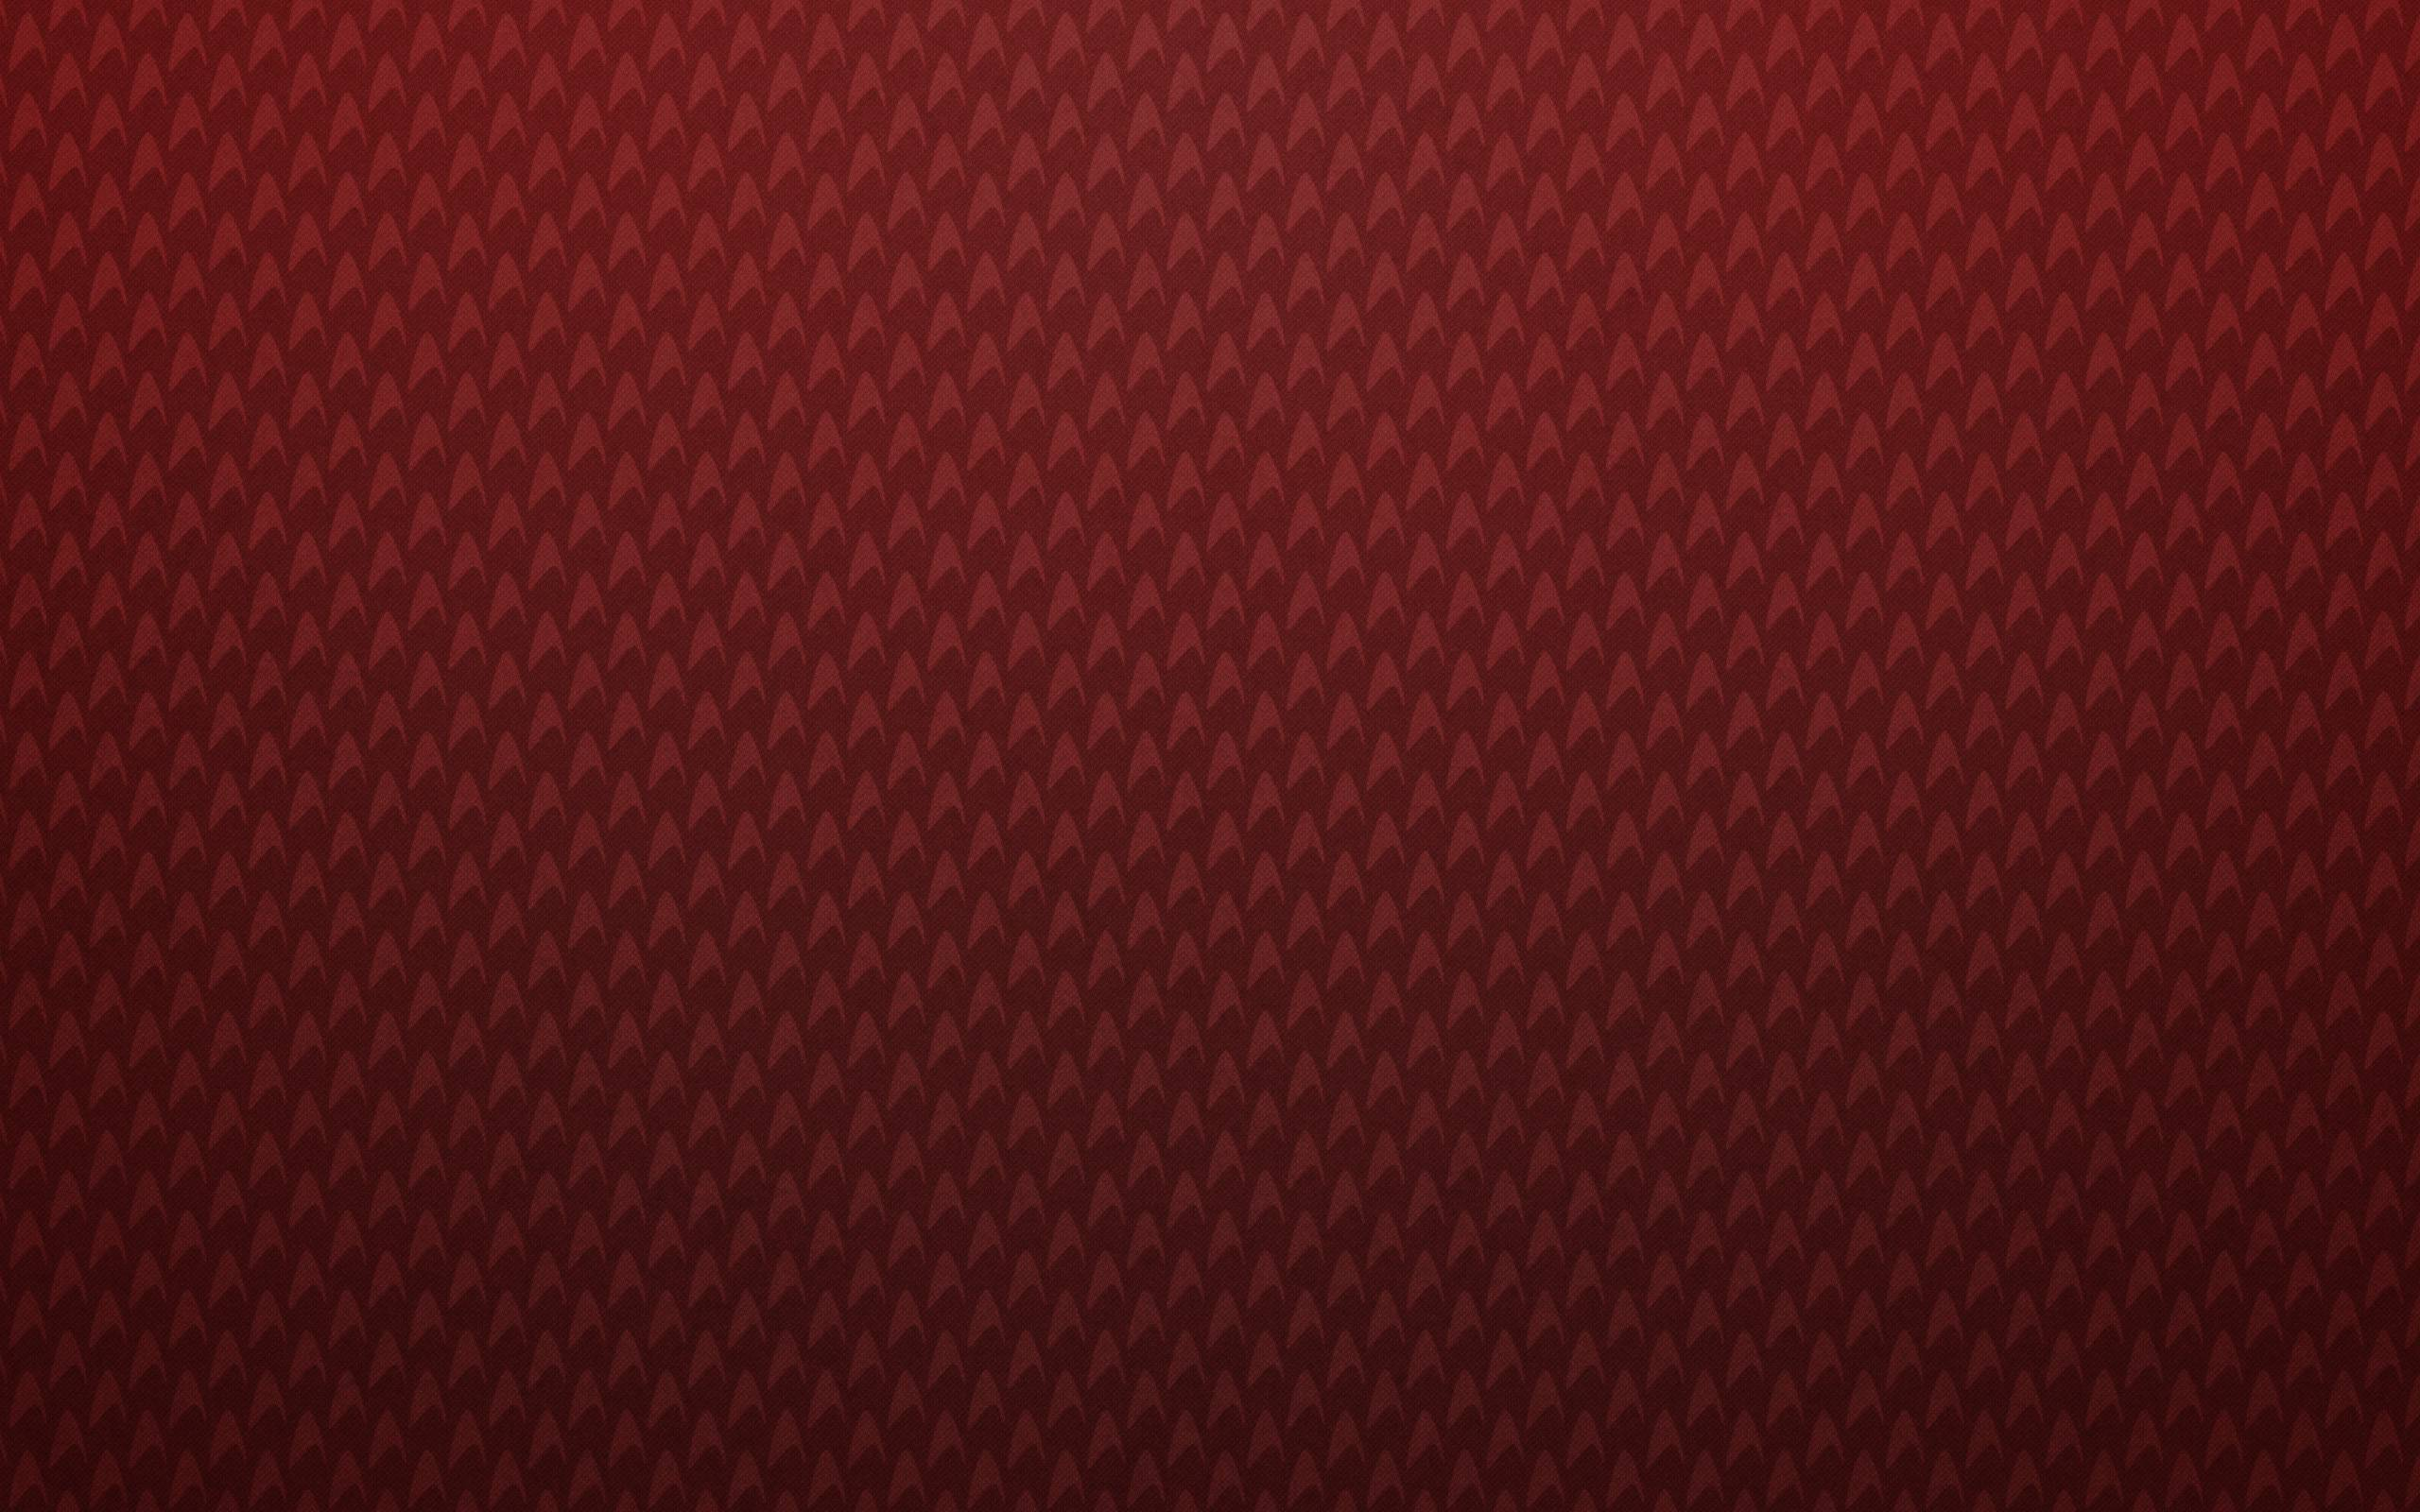 Red Leather Texture Wallpaper